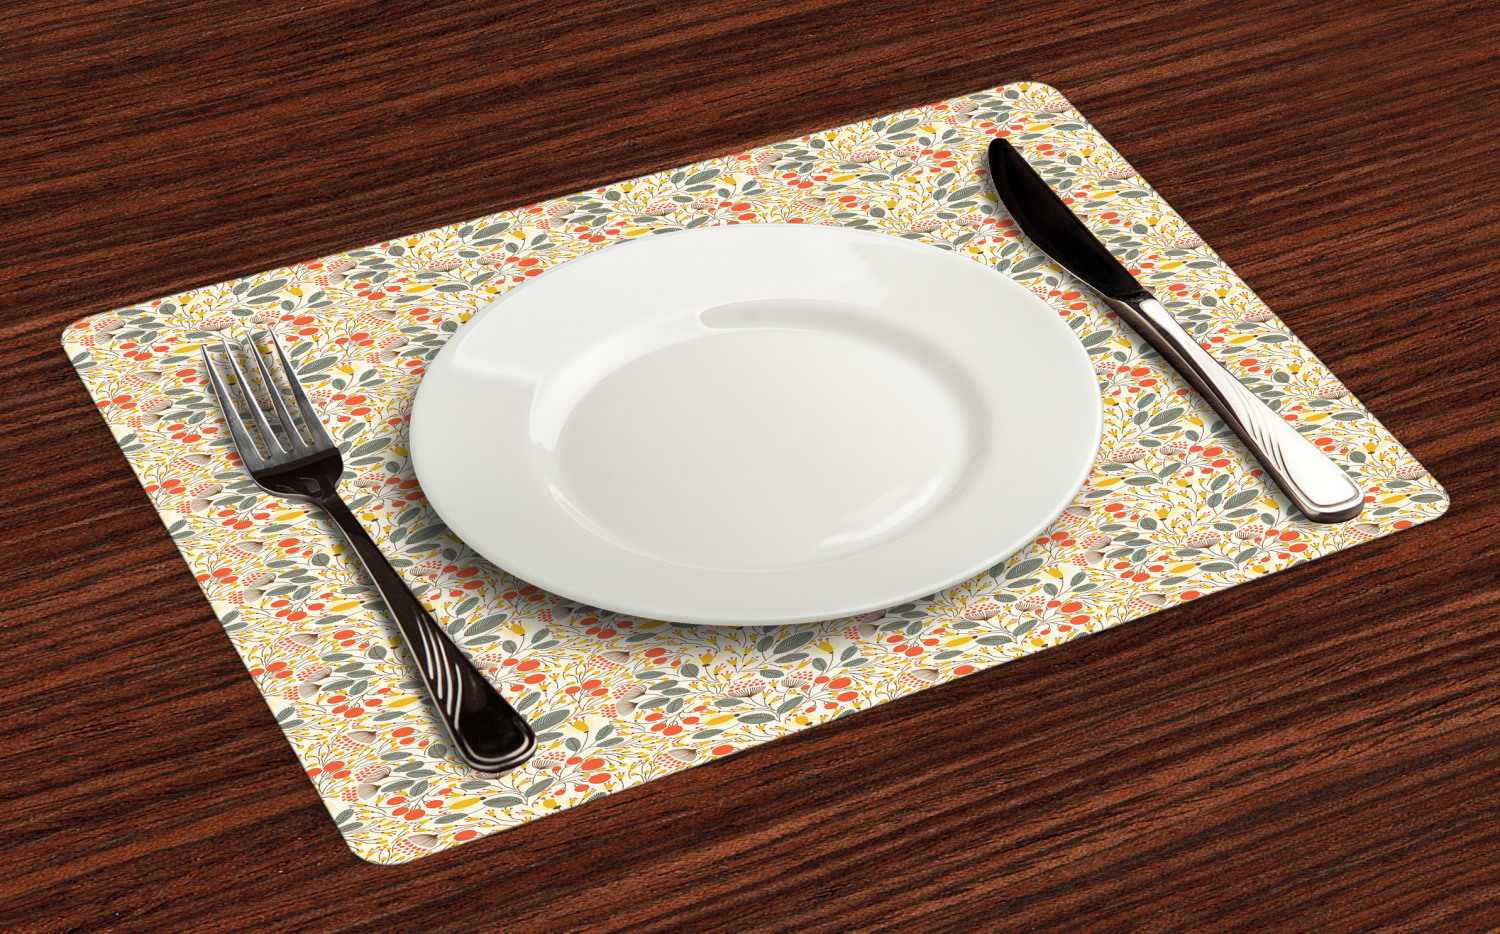 Ambesonne-Flower-Pattern-Placemat-Set-of-4-Fabric-Place-Mats-for-Table-Decor thumbnail 133